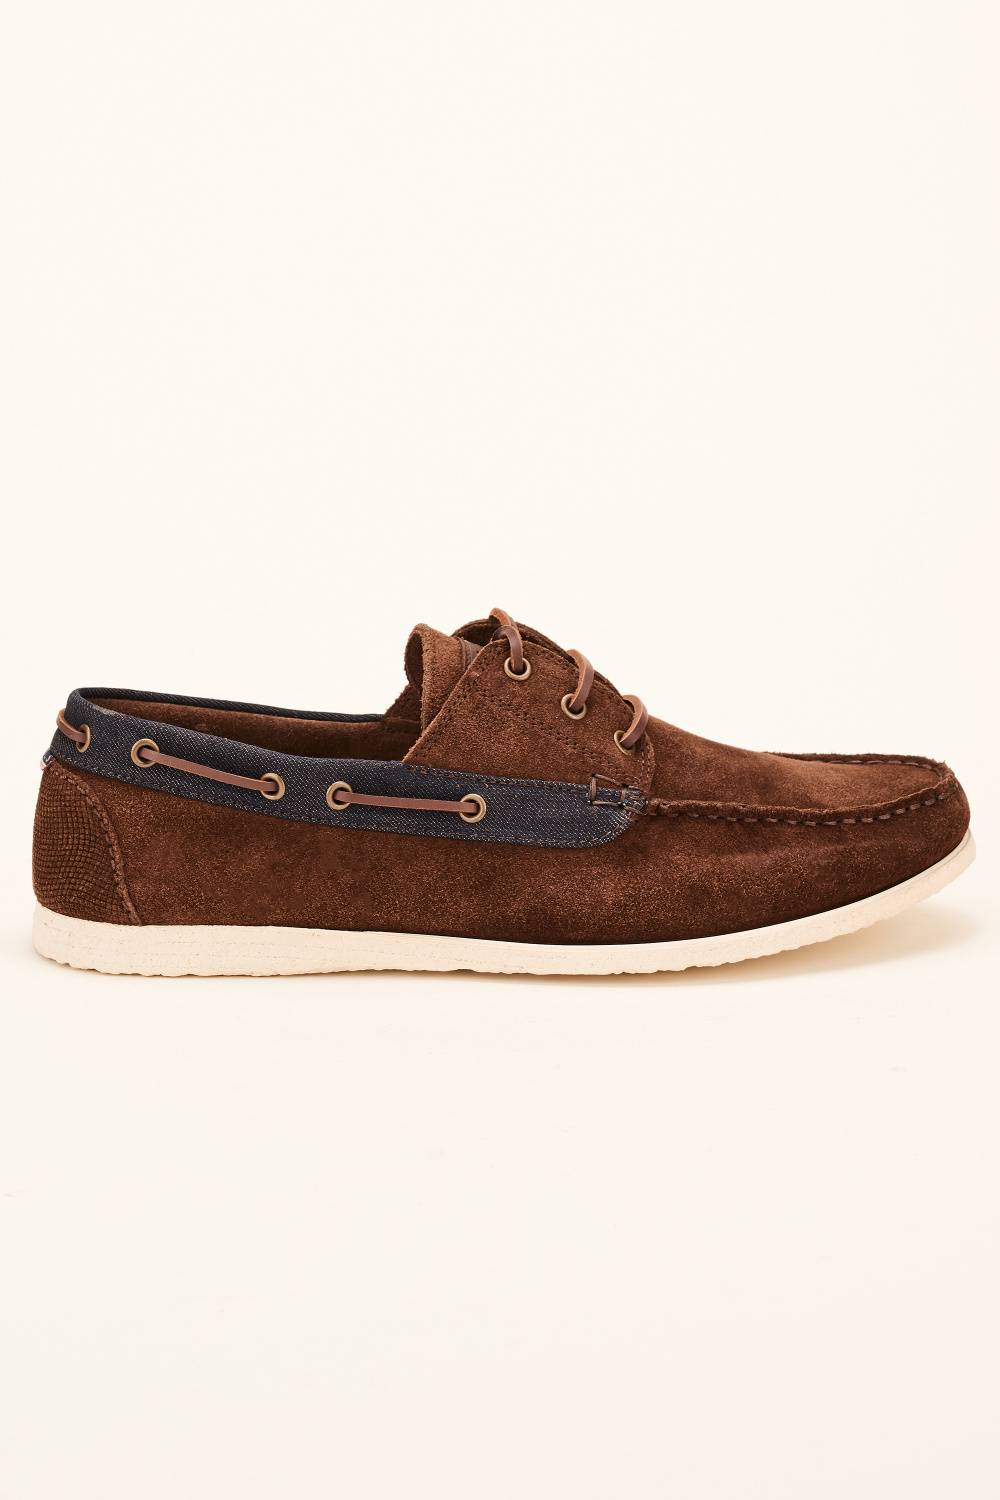 Leather Moccasins - Salsa